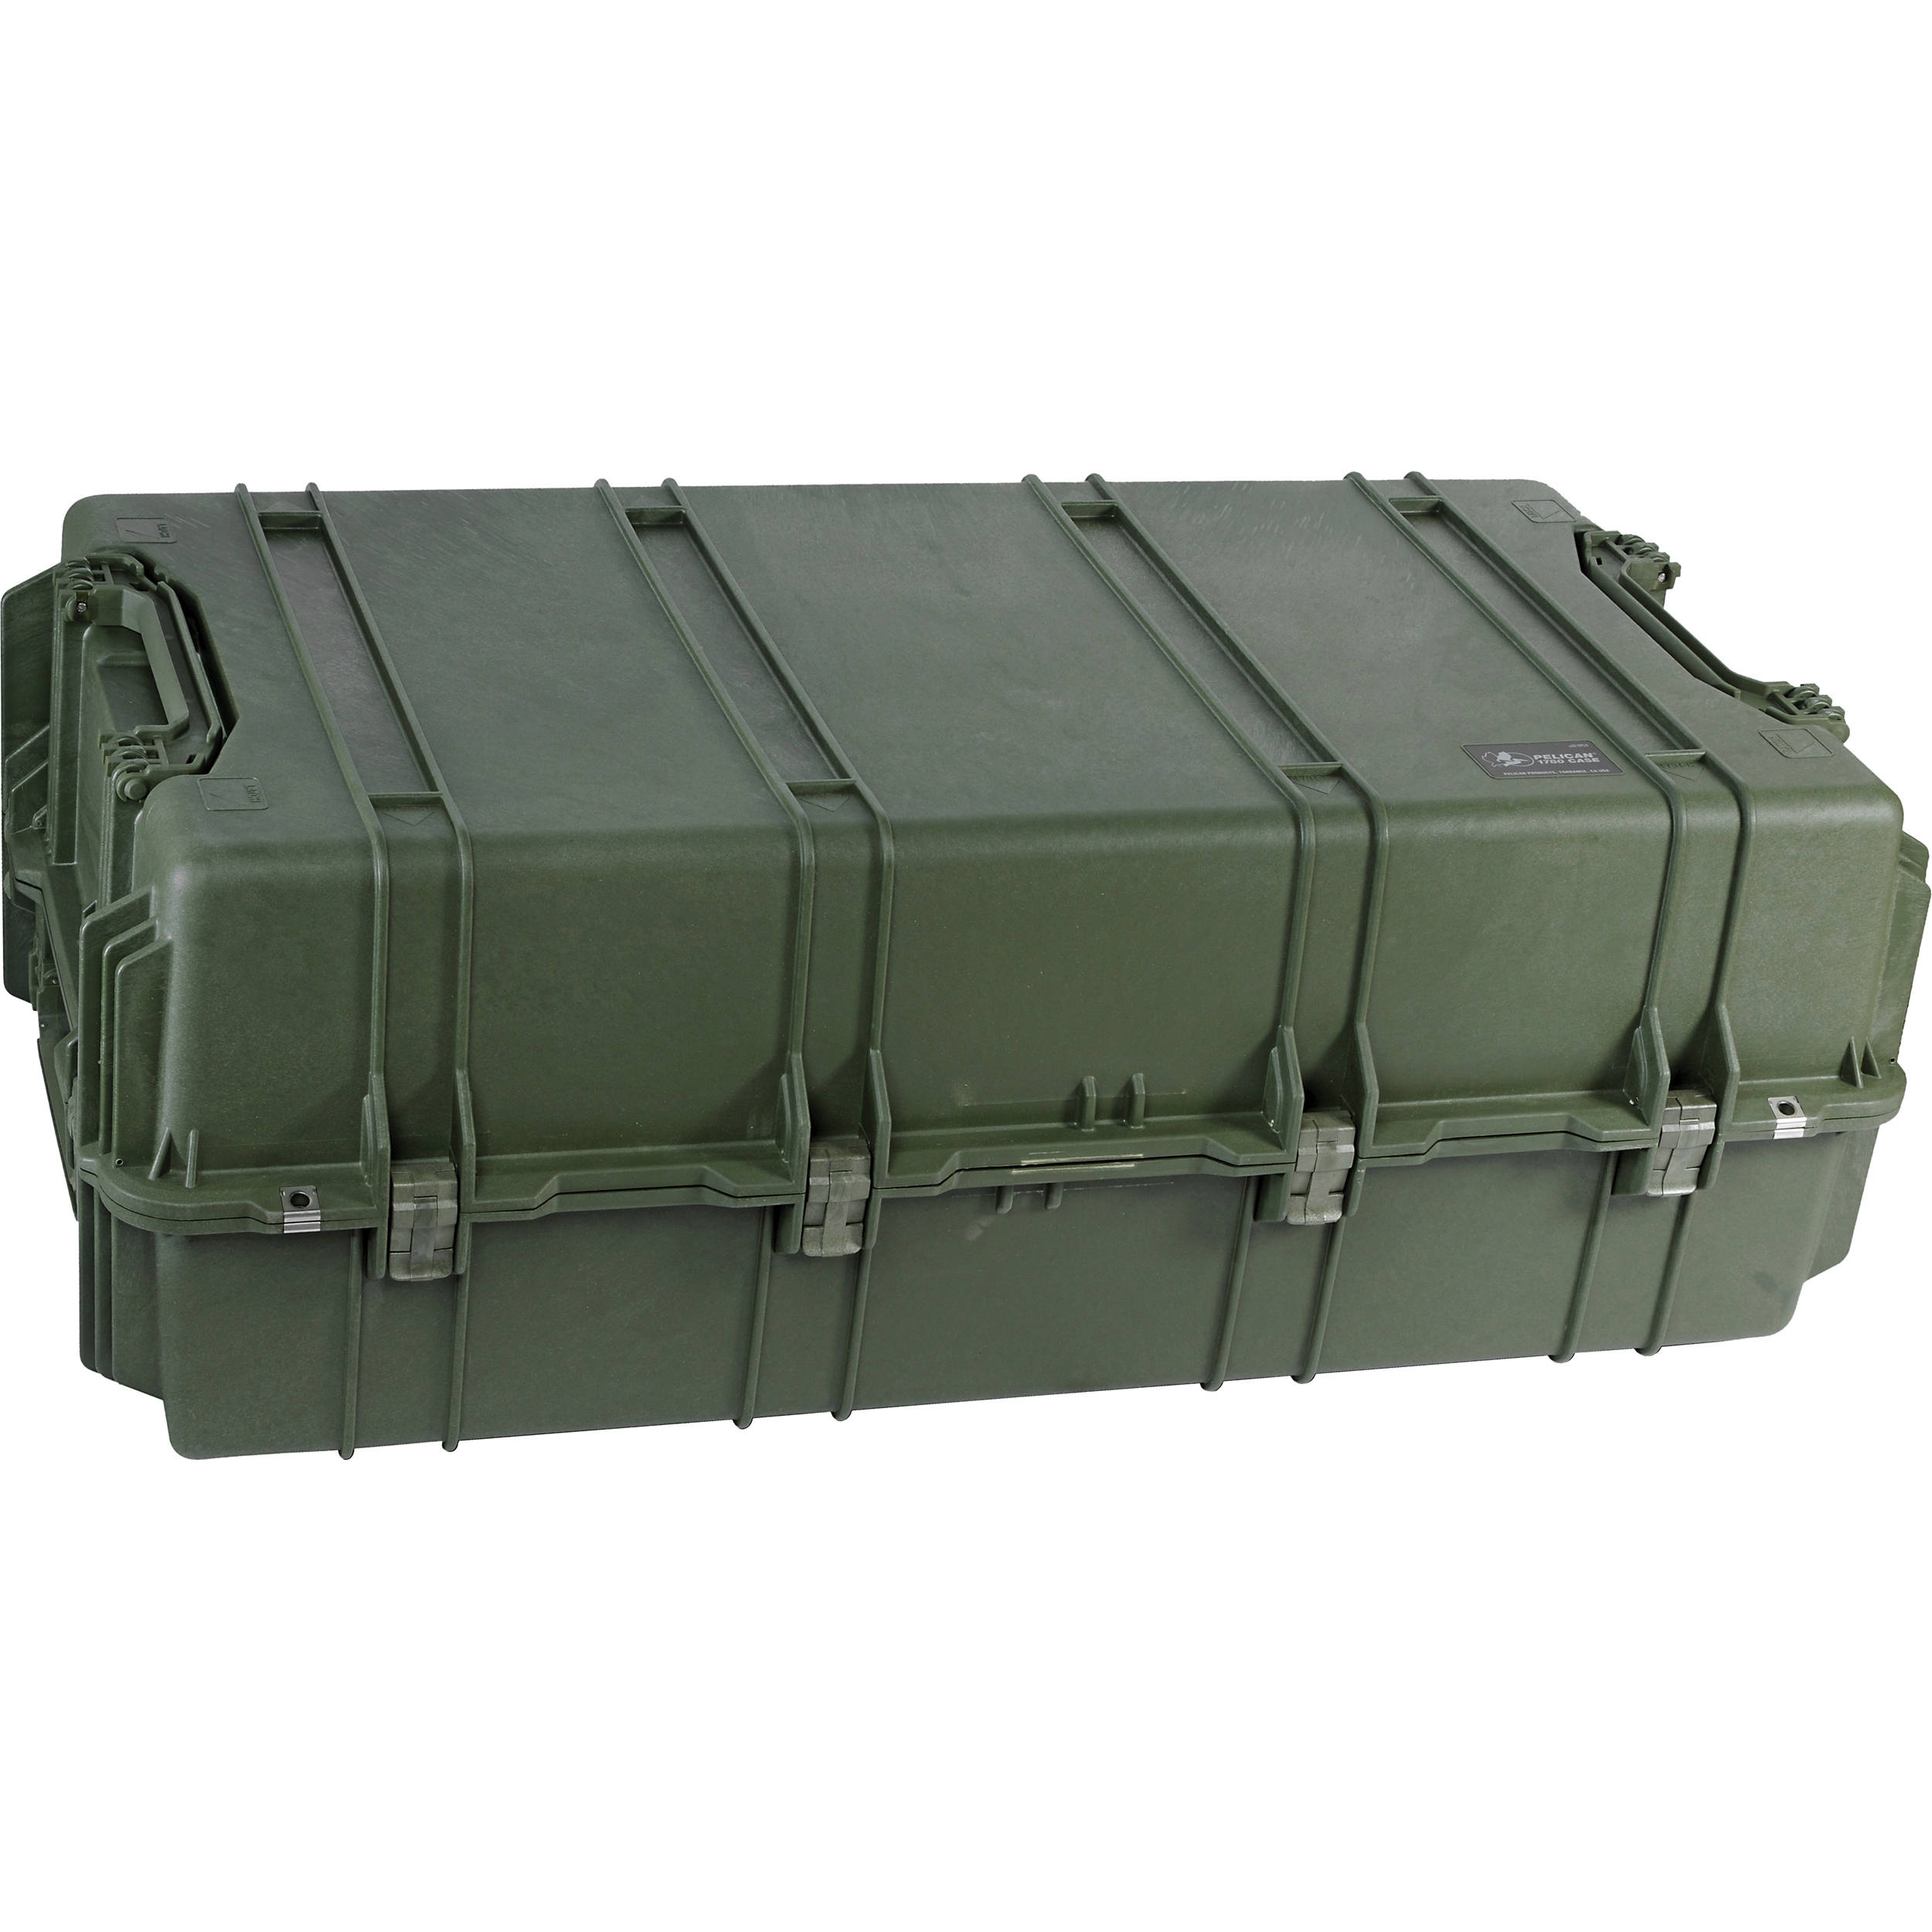 Pelican 1780T Transport Case (Olive Drab Green)